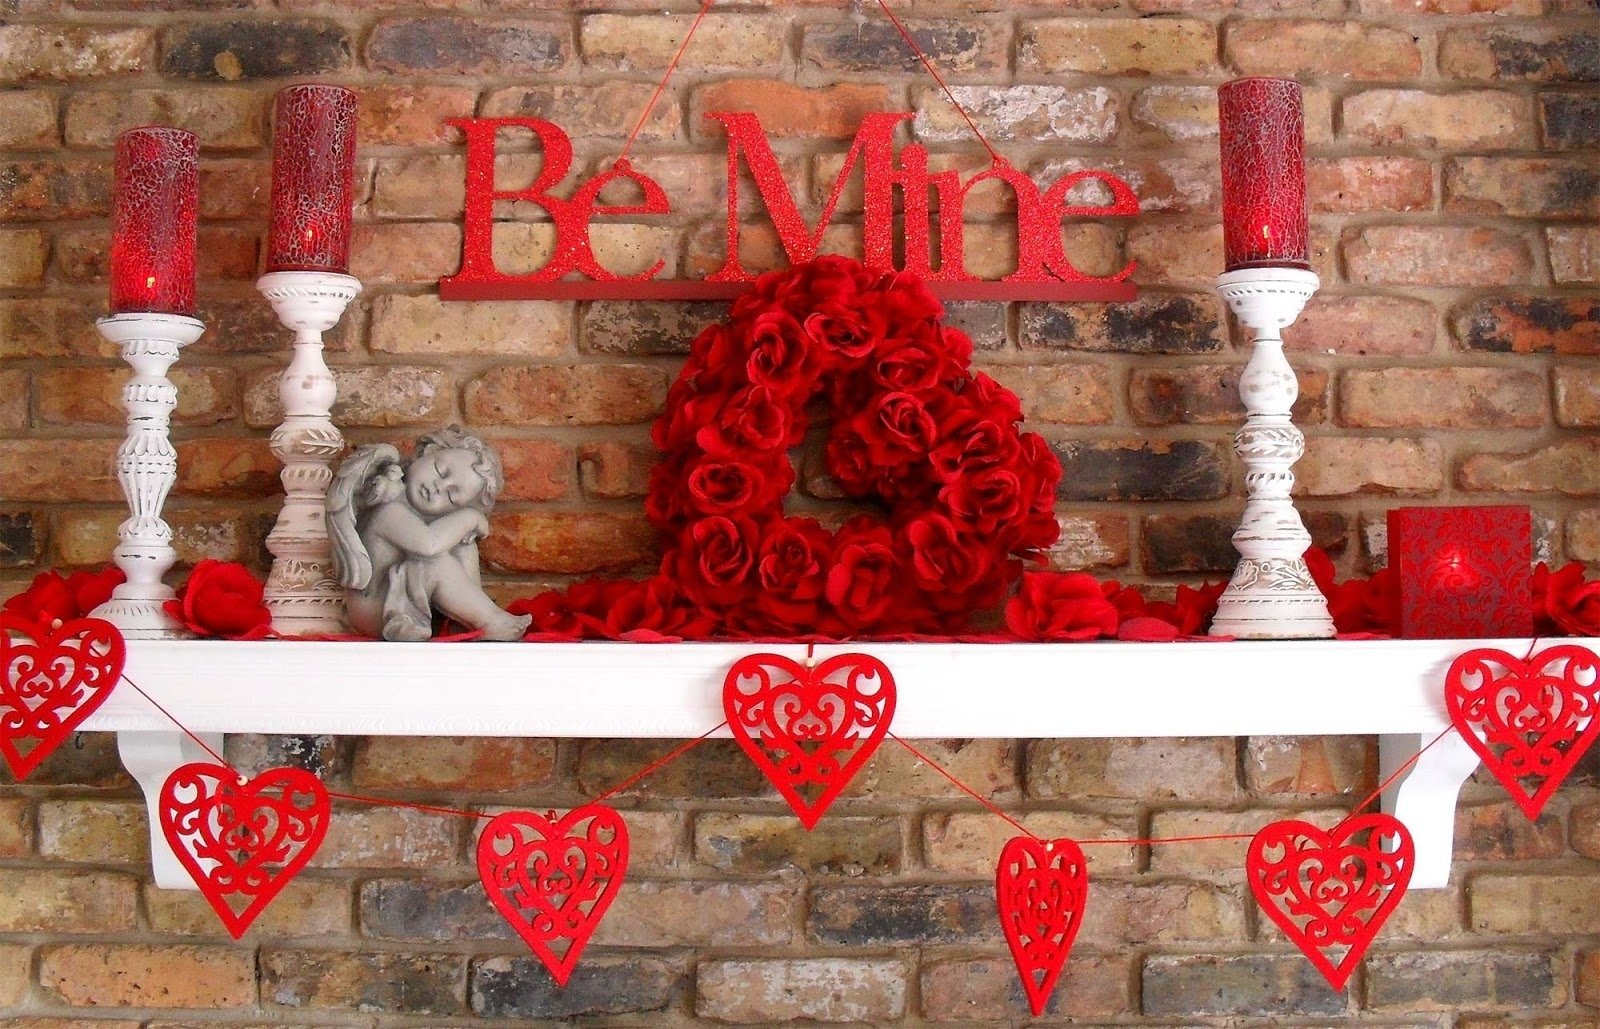 10 Great Most Romantic Valentines Day Ideas ideas most romantic mantel of fireplace in valentine day ideas 2021